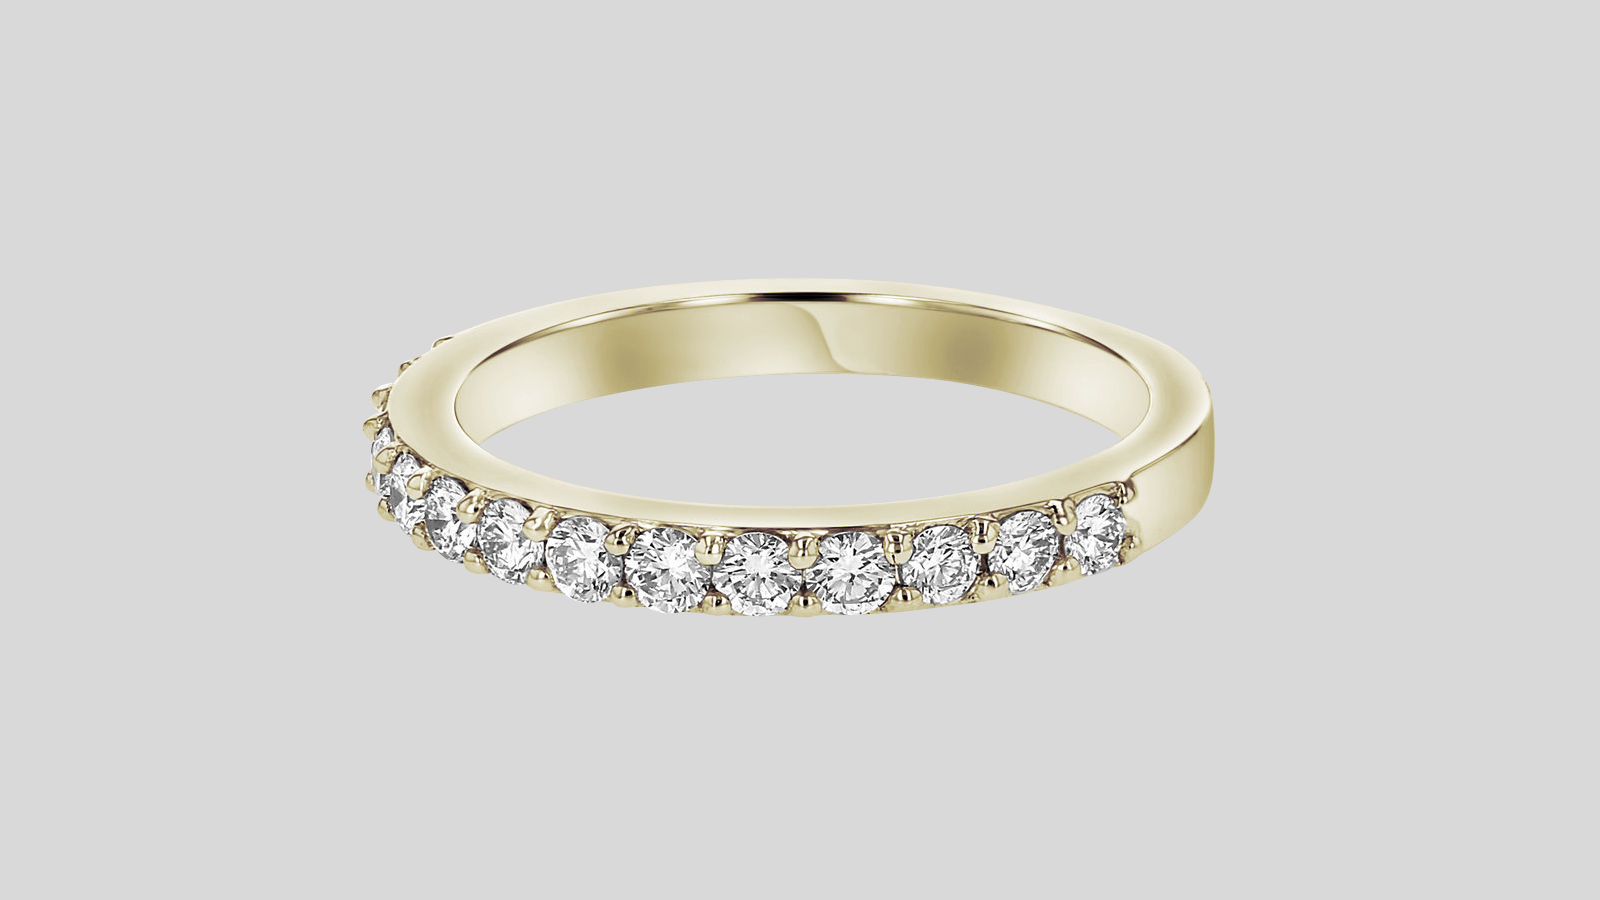 The Half Band Diamond Ring